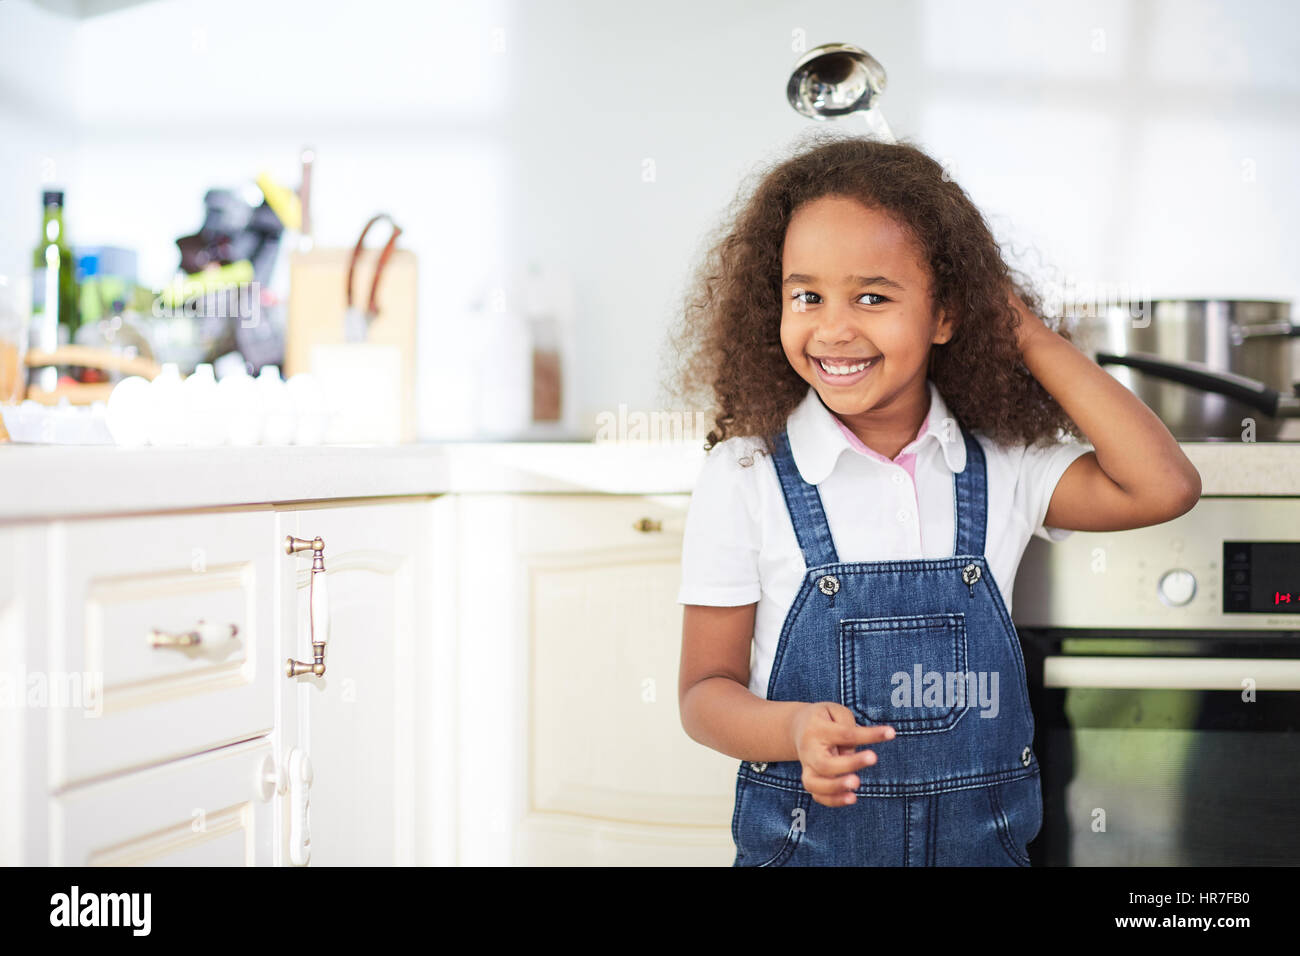 f5ffce5b321b Cute little girl in denim jumpsuit standing next to kitchen oven and  looking at camera with